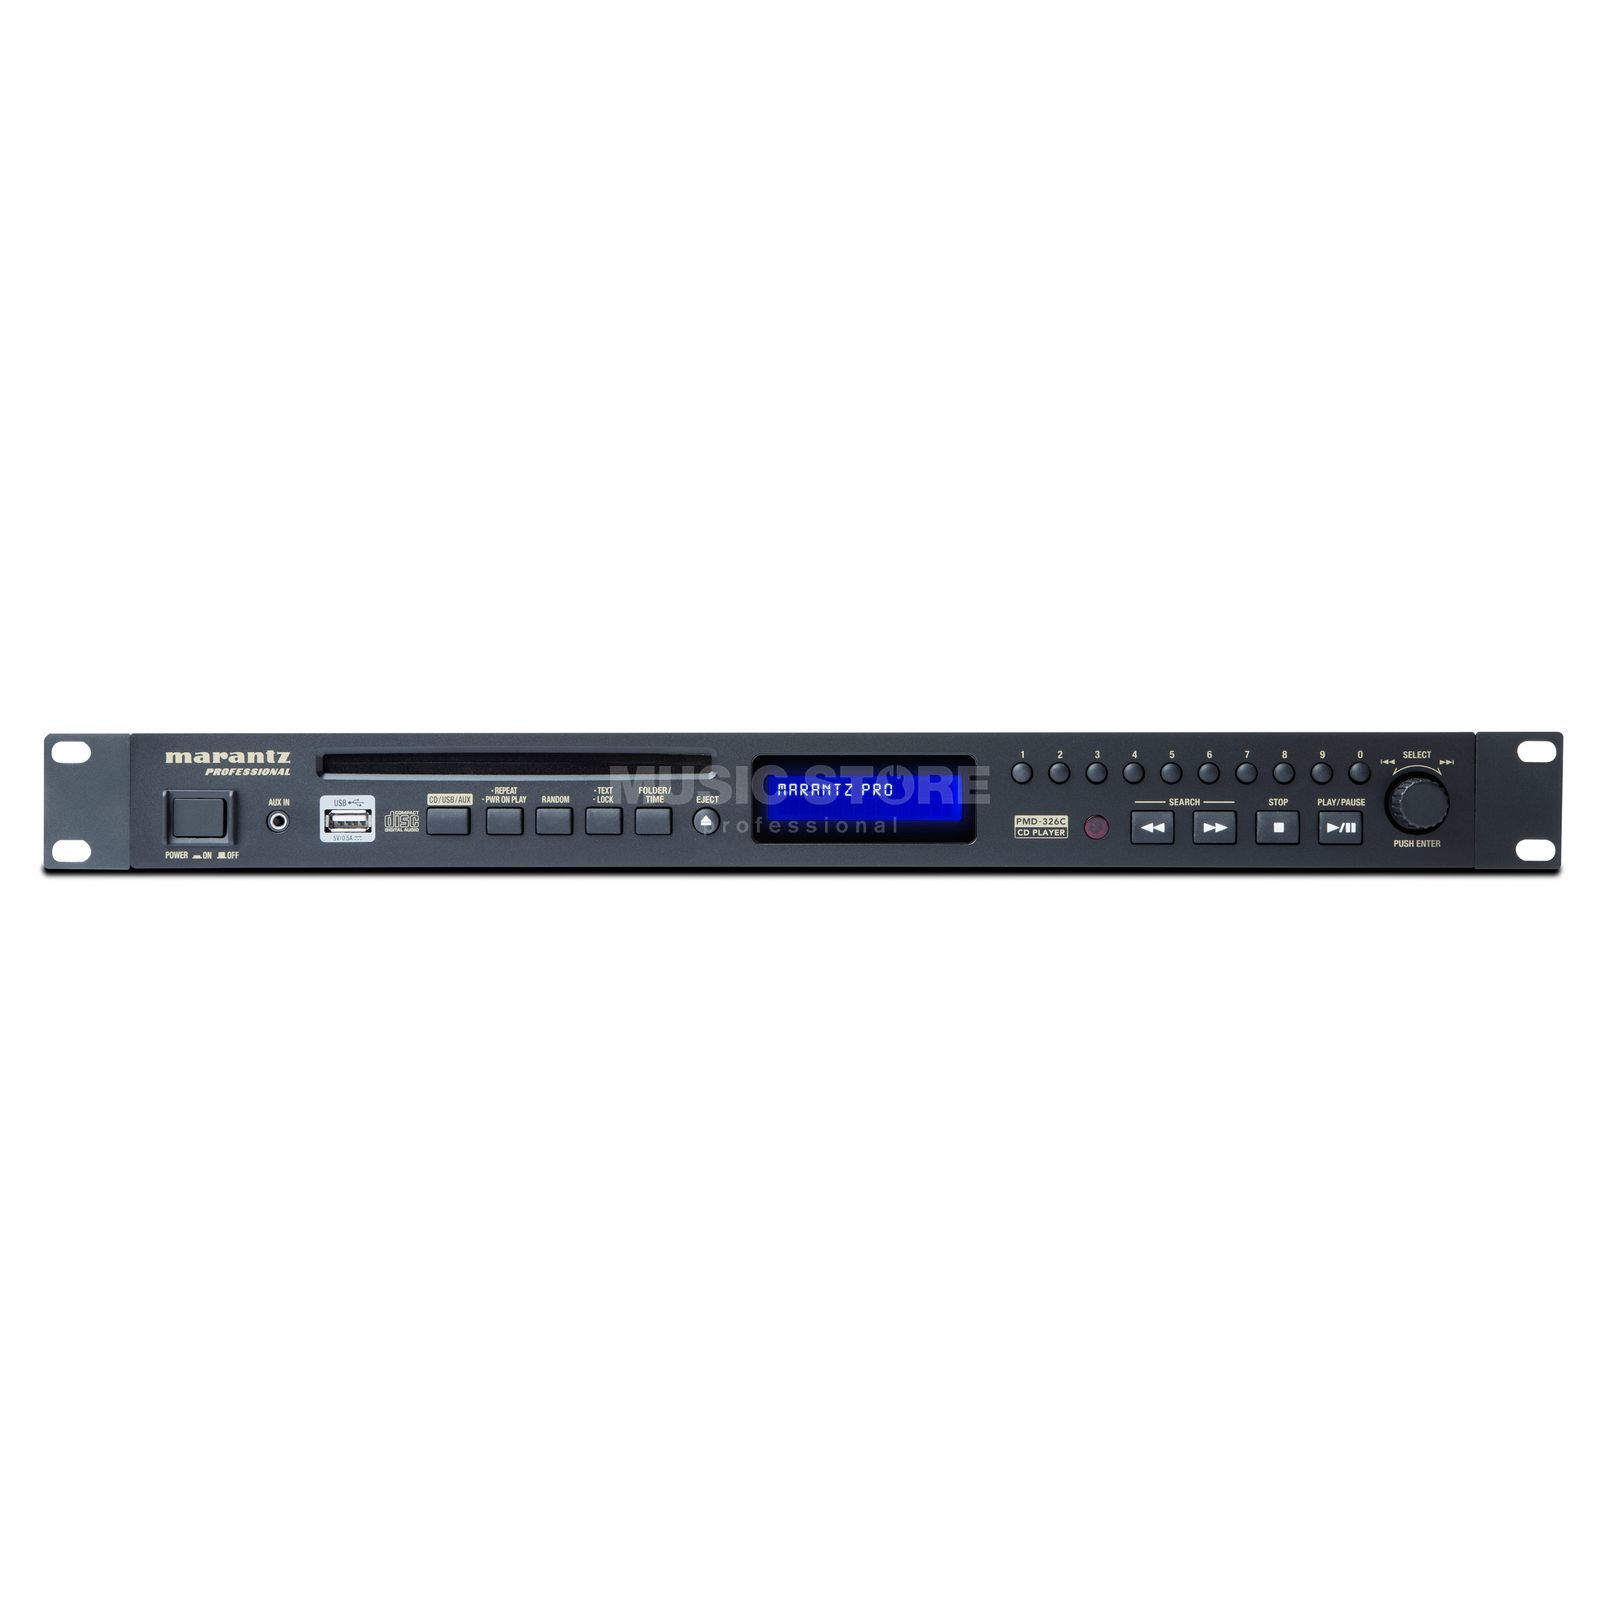 Marantz PMD-326C CD/USB Mediaplayer Изображение товара